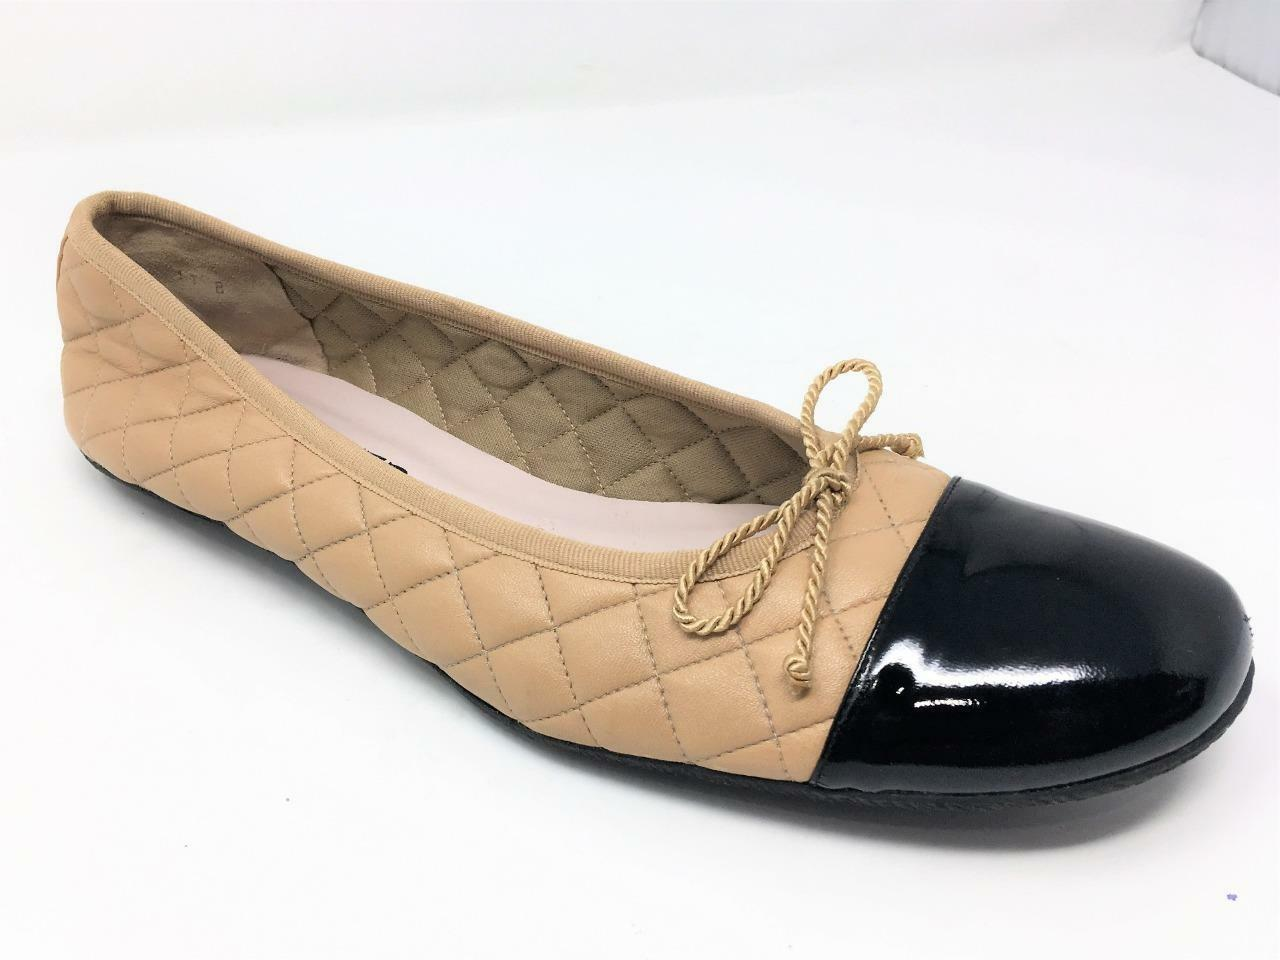 229 Paul Meyer 11 Beige Quilted Ballet Flats Bows Black Cap